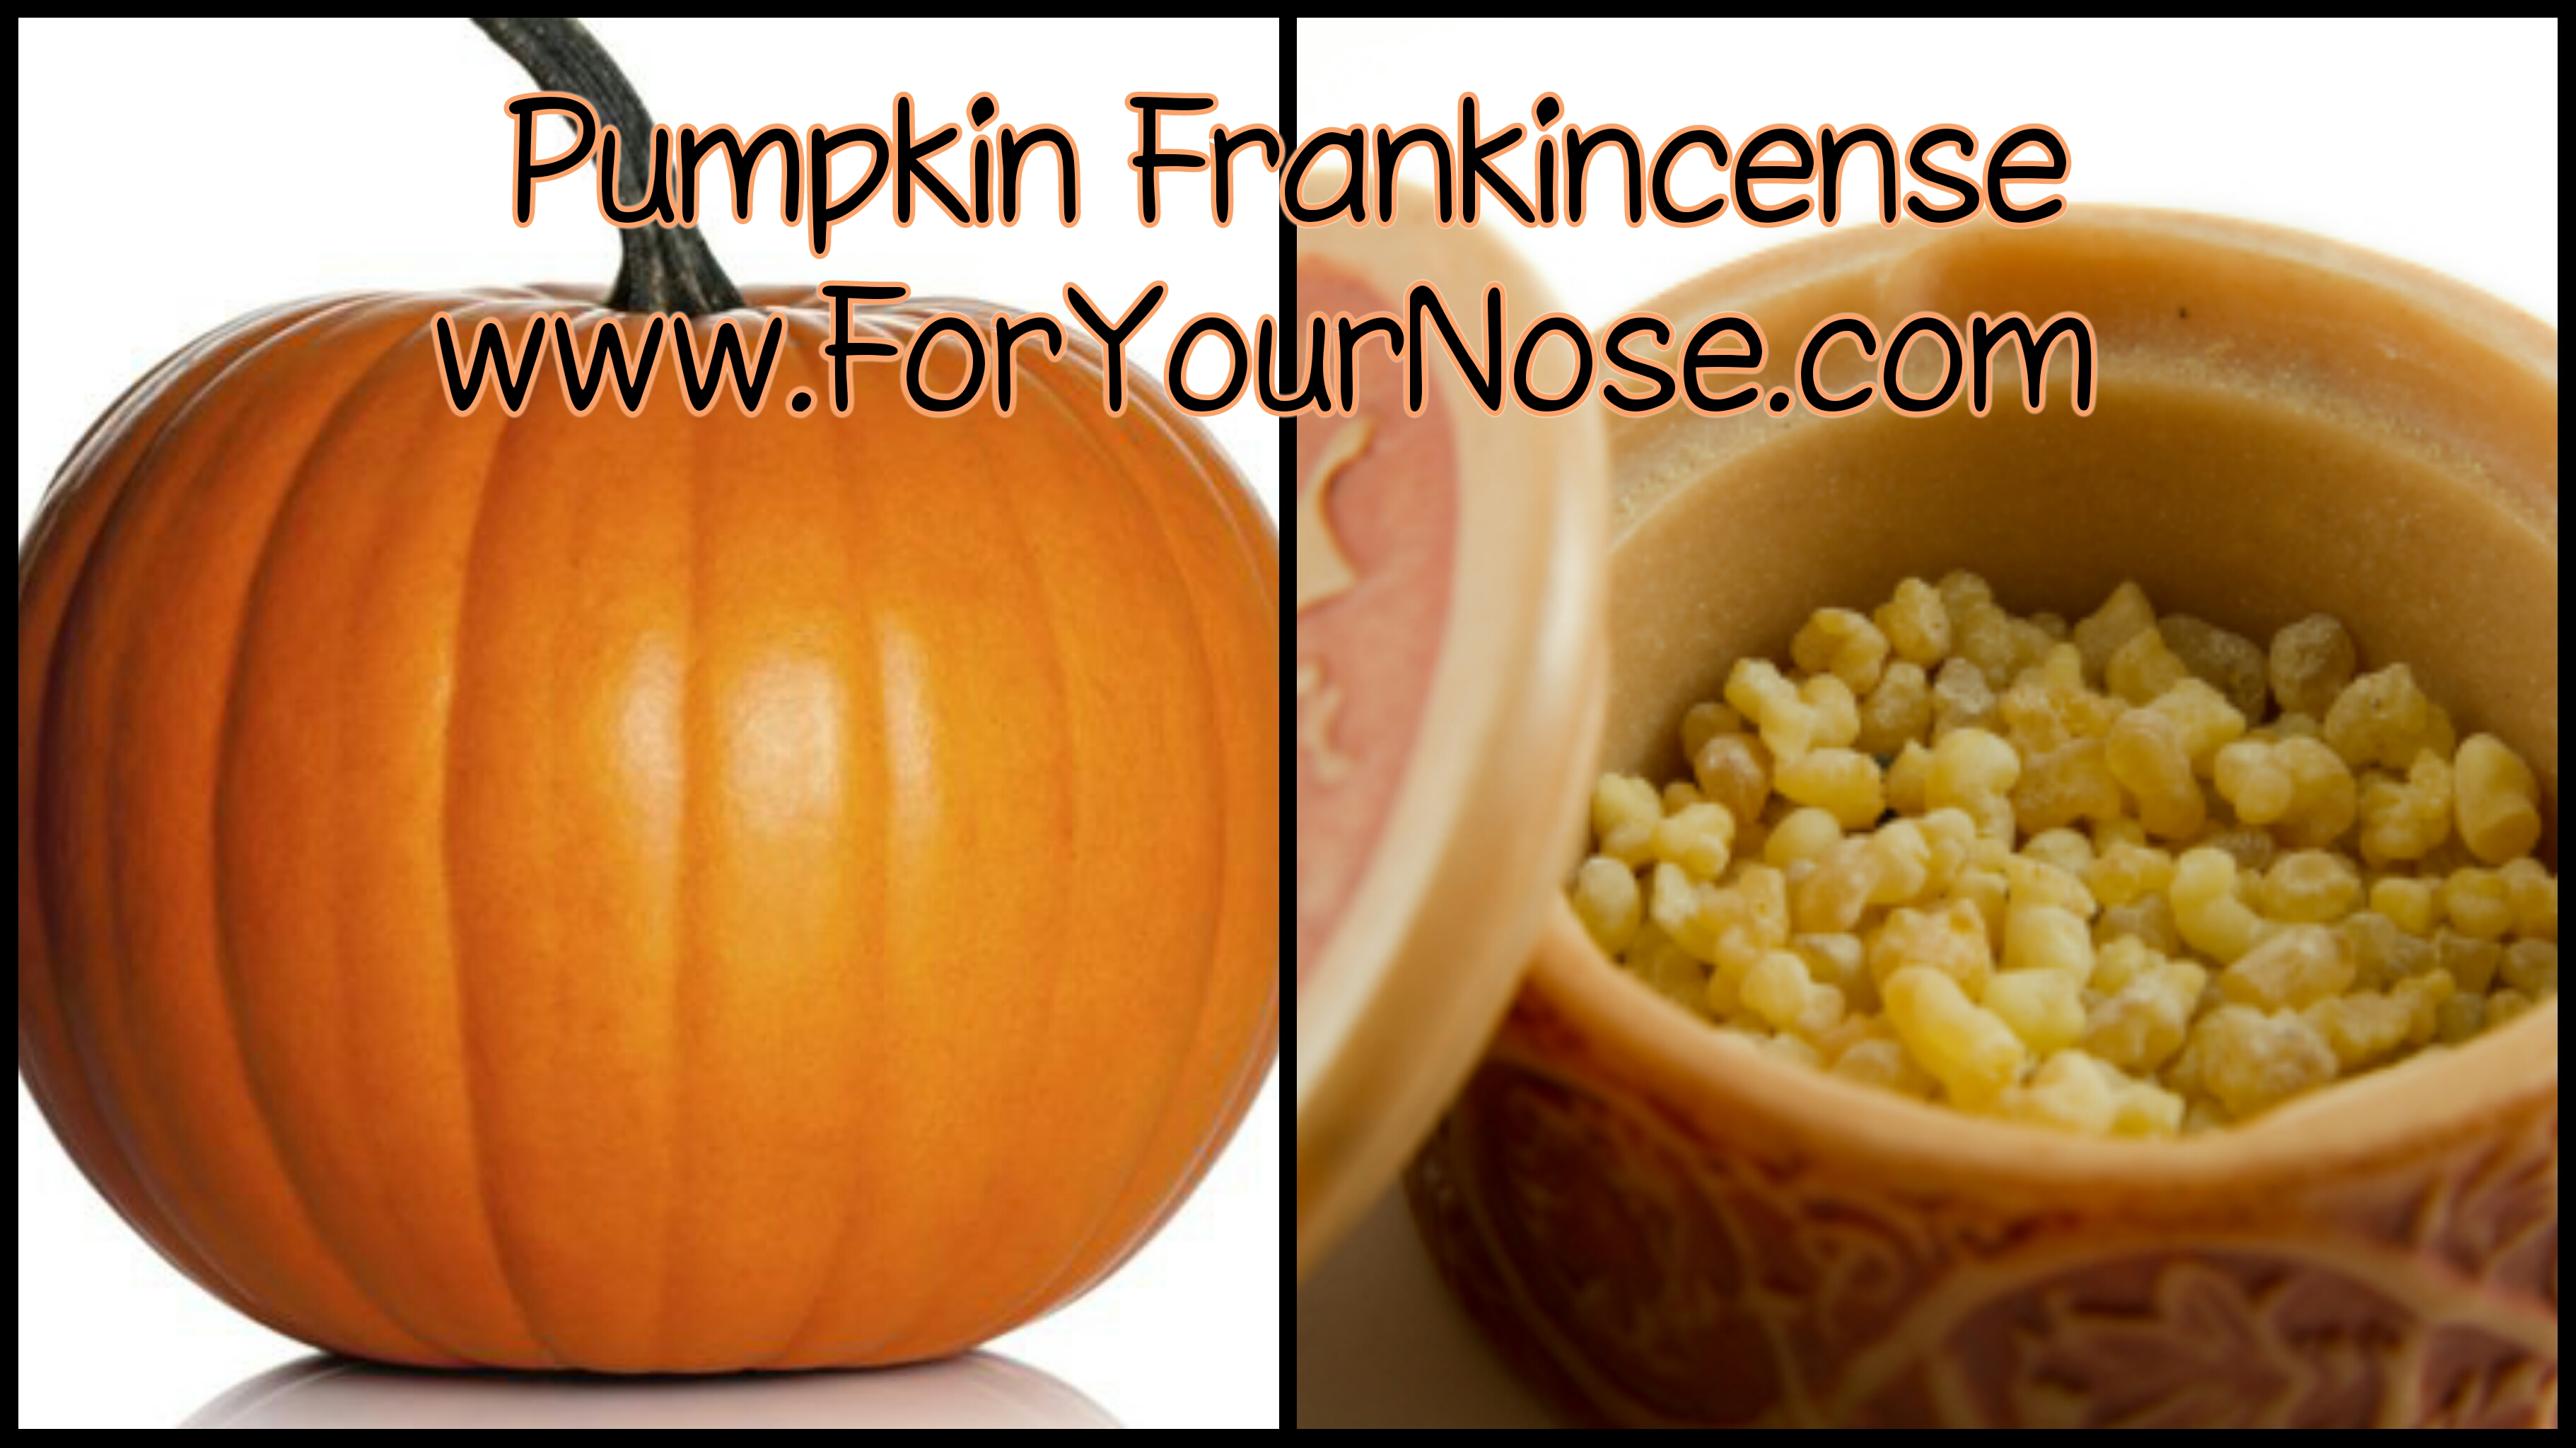 pumpkin frankincense fragrance